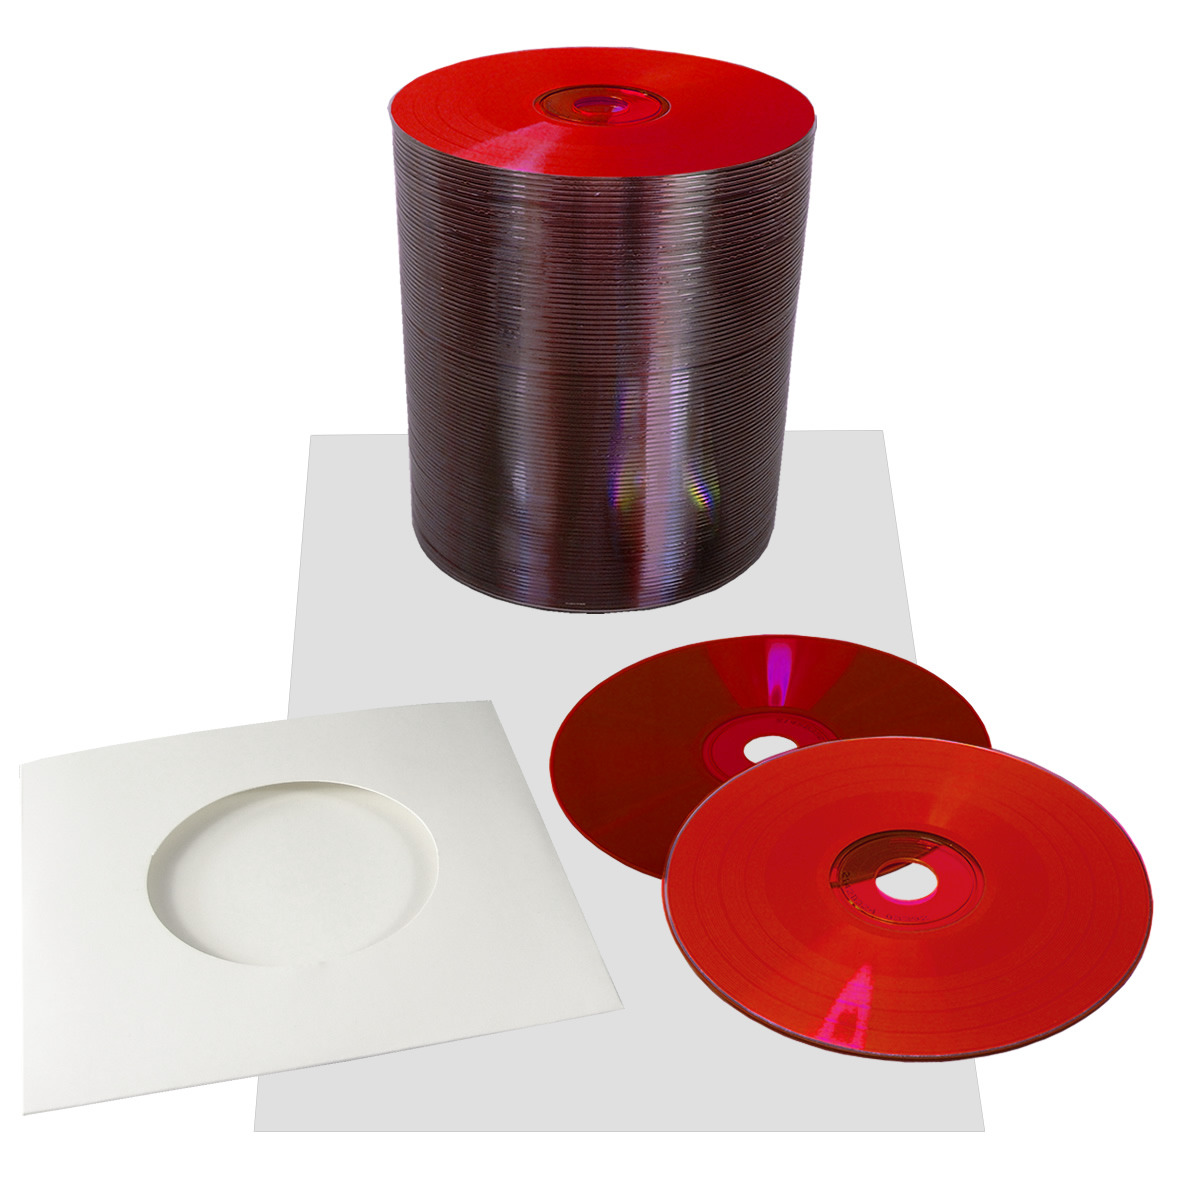 Blank 12cm Red Vinyl Cd R 700mb With Stickers And